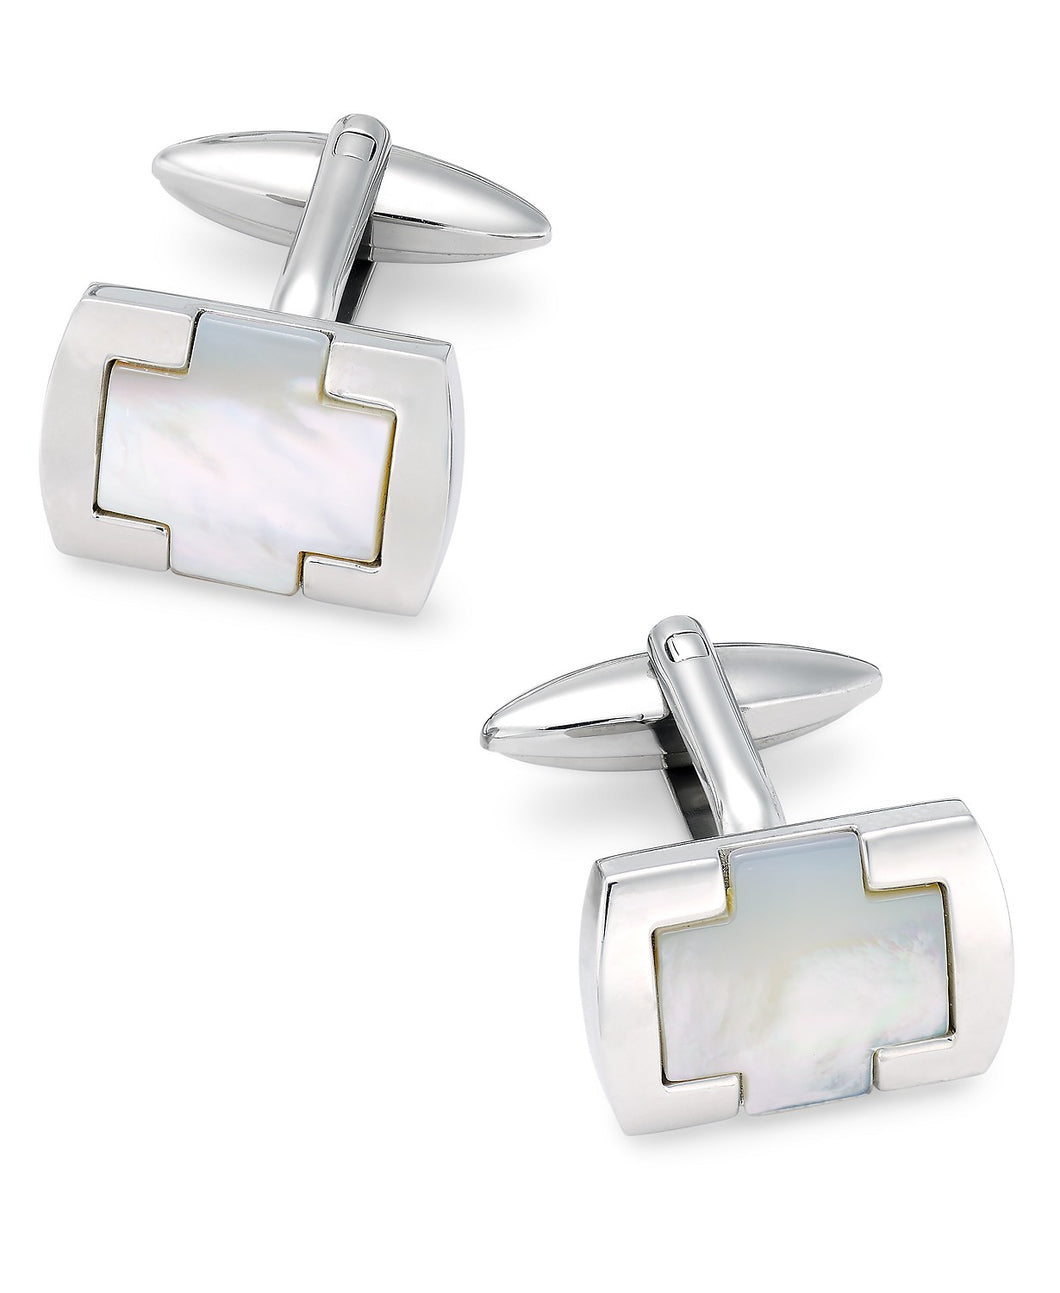 Men's Stainless Steel & Mother-of-Pearl Cufflinks